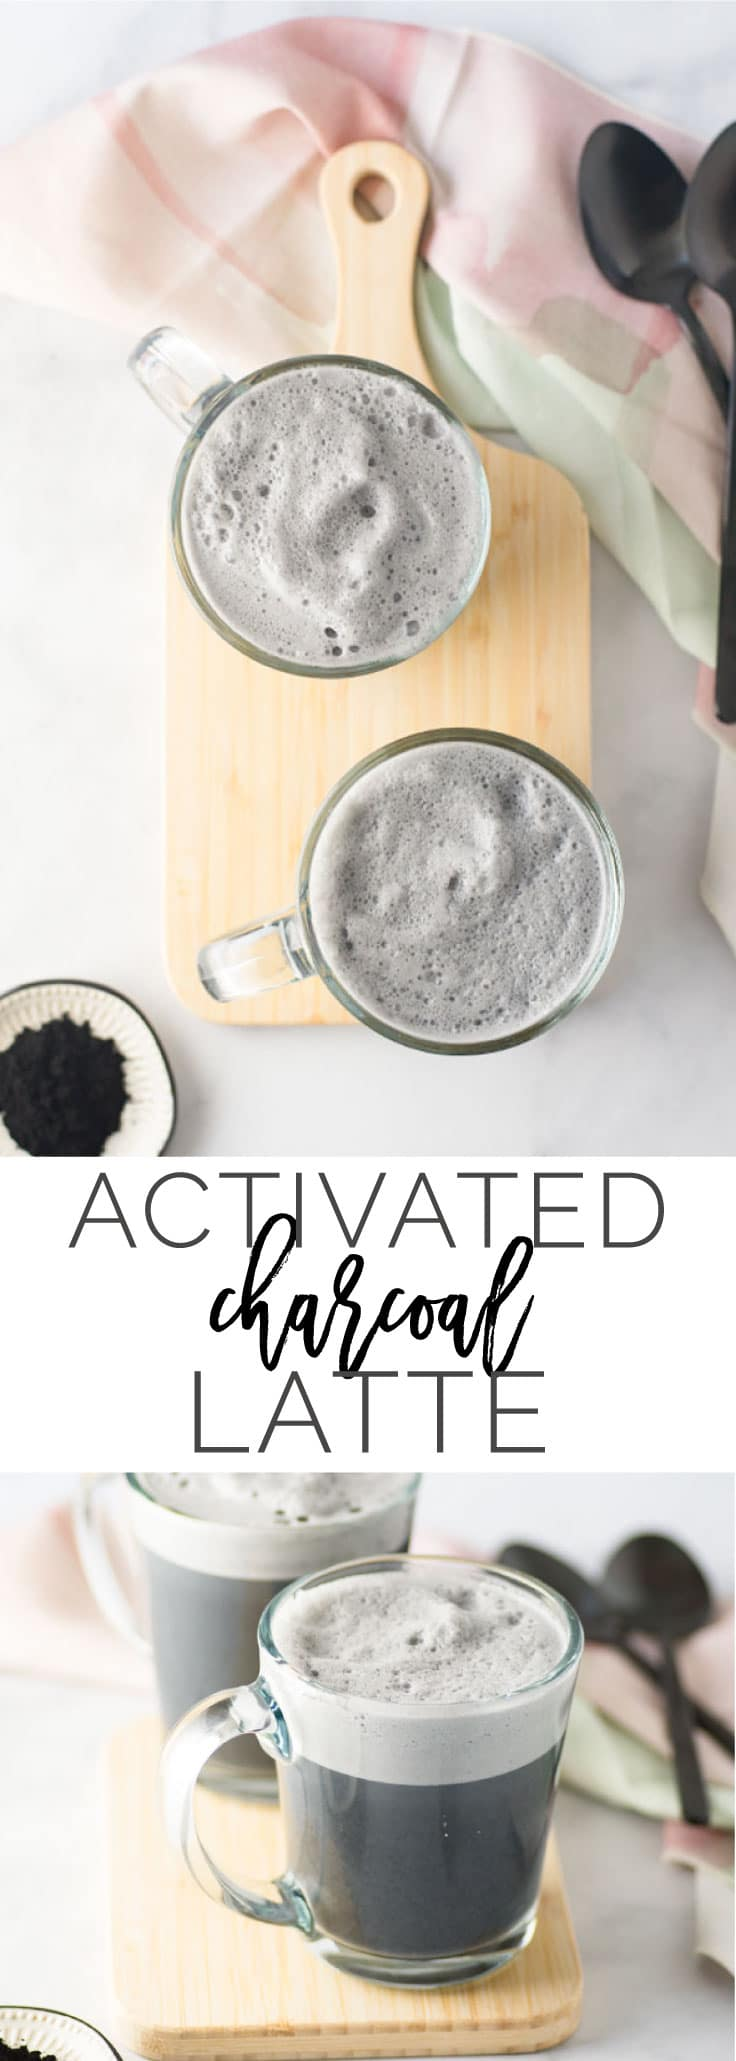 Activated Charcoal Latte -- Let your inner-goth squeal with this black charcoal latte! It's all you need to detox and feel great. Activated charcoal has amazing benefits for the inside and out and when paired with almond milk, makes a delicious and healthy beverage! #vegan #detox #healthy #charcoal #cleaneating #latte - mindfulavocado